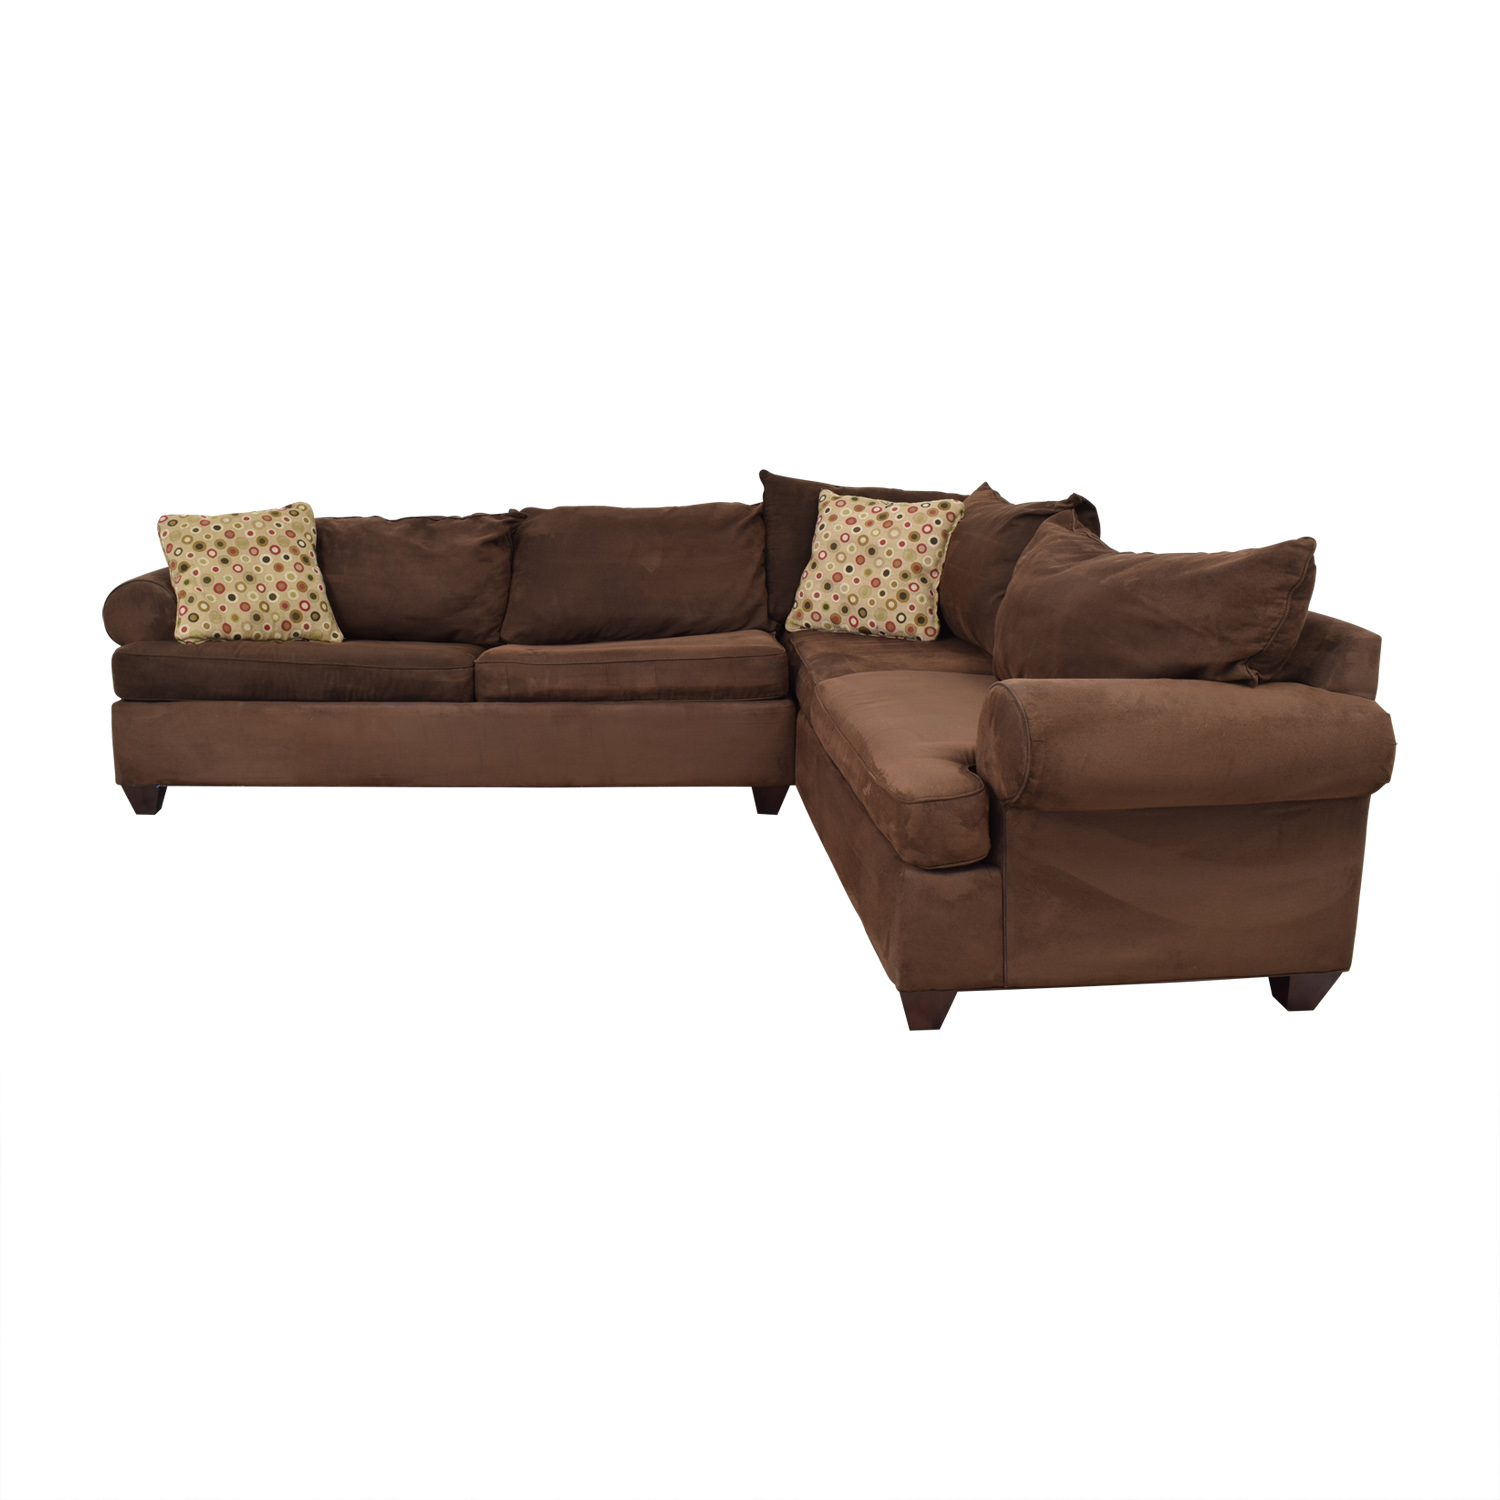 buy Raymour & Flanigan Brown L-Shaped Sectional With Pull-Out Convertible Bed Raymour & Flanigan Sofas